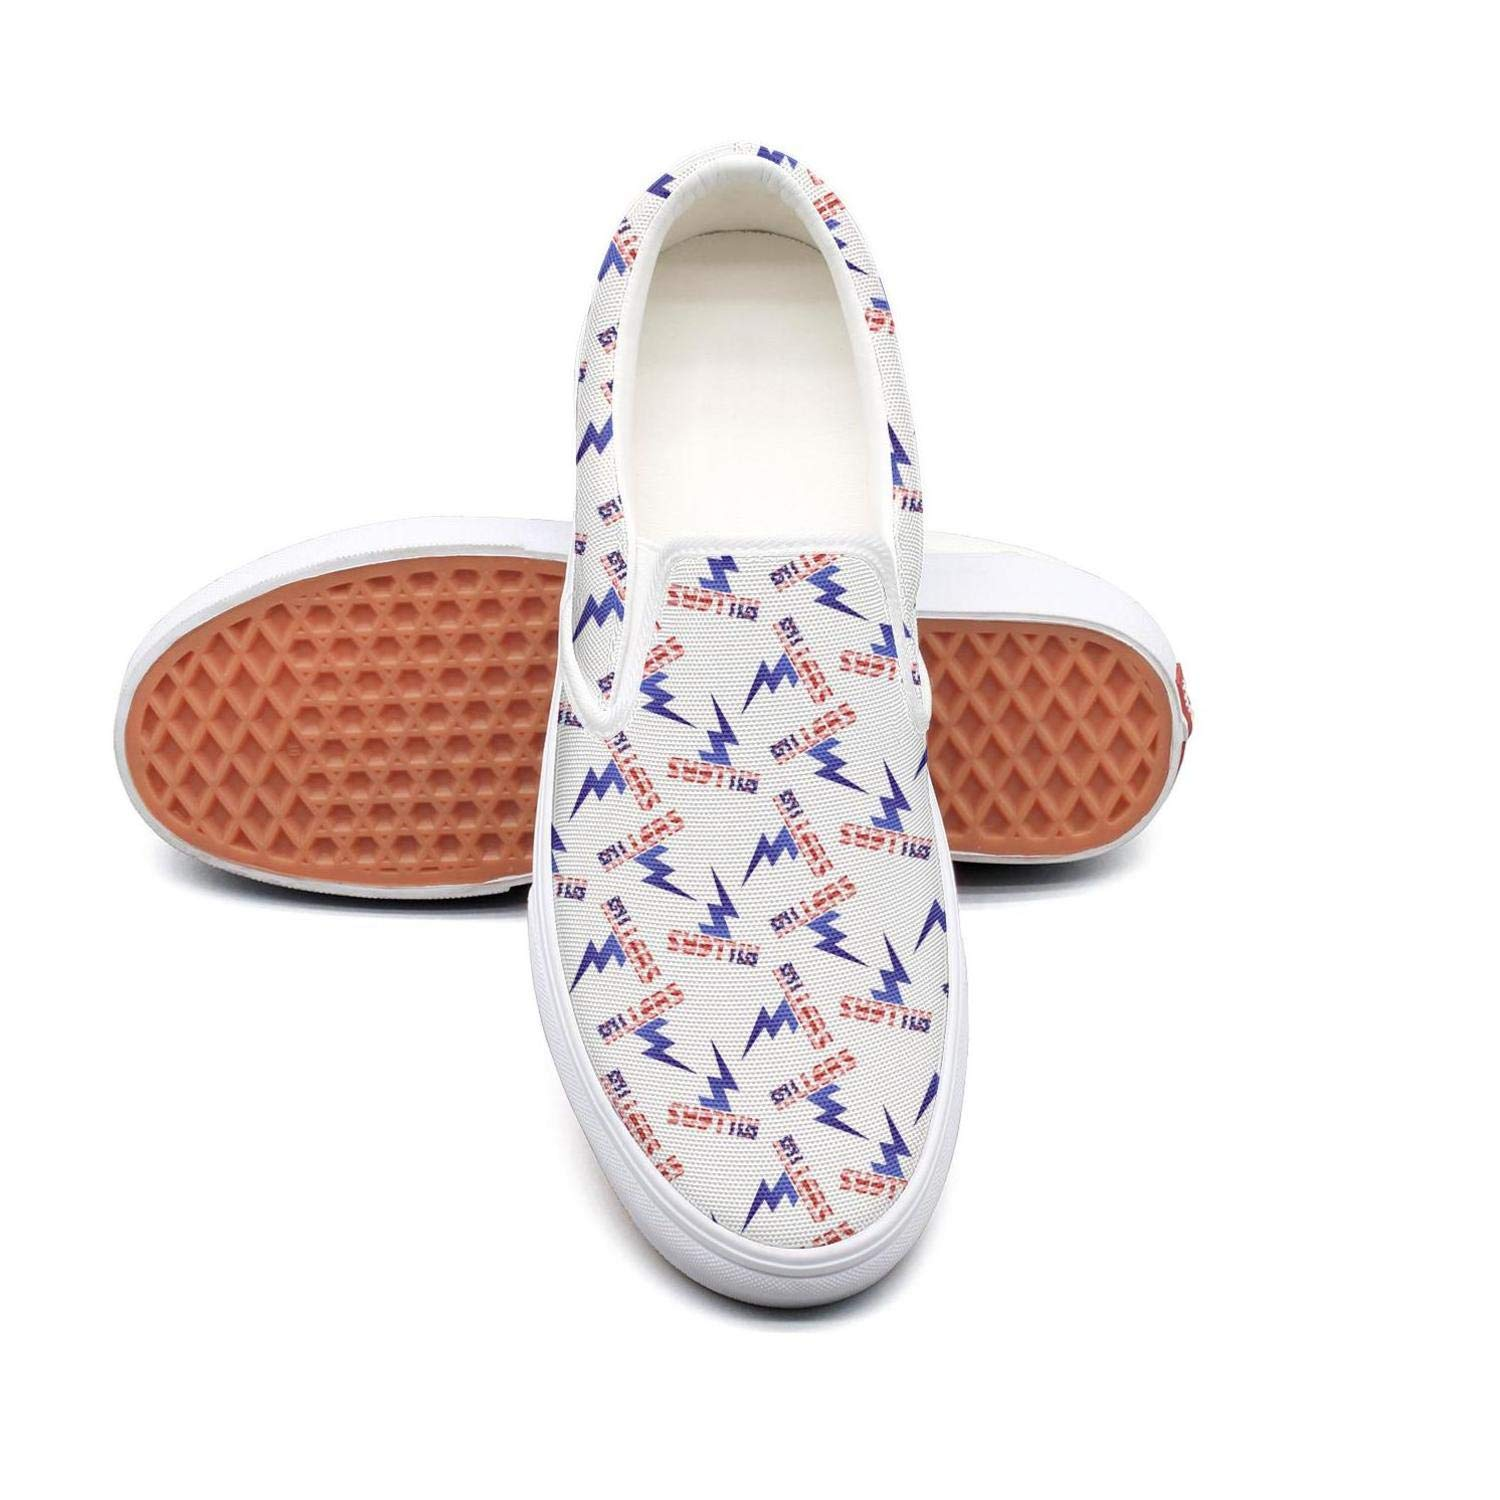 Uxsqjkndx Women Awesome Slip-on Sneakers Canvas Shoes